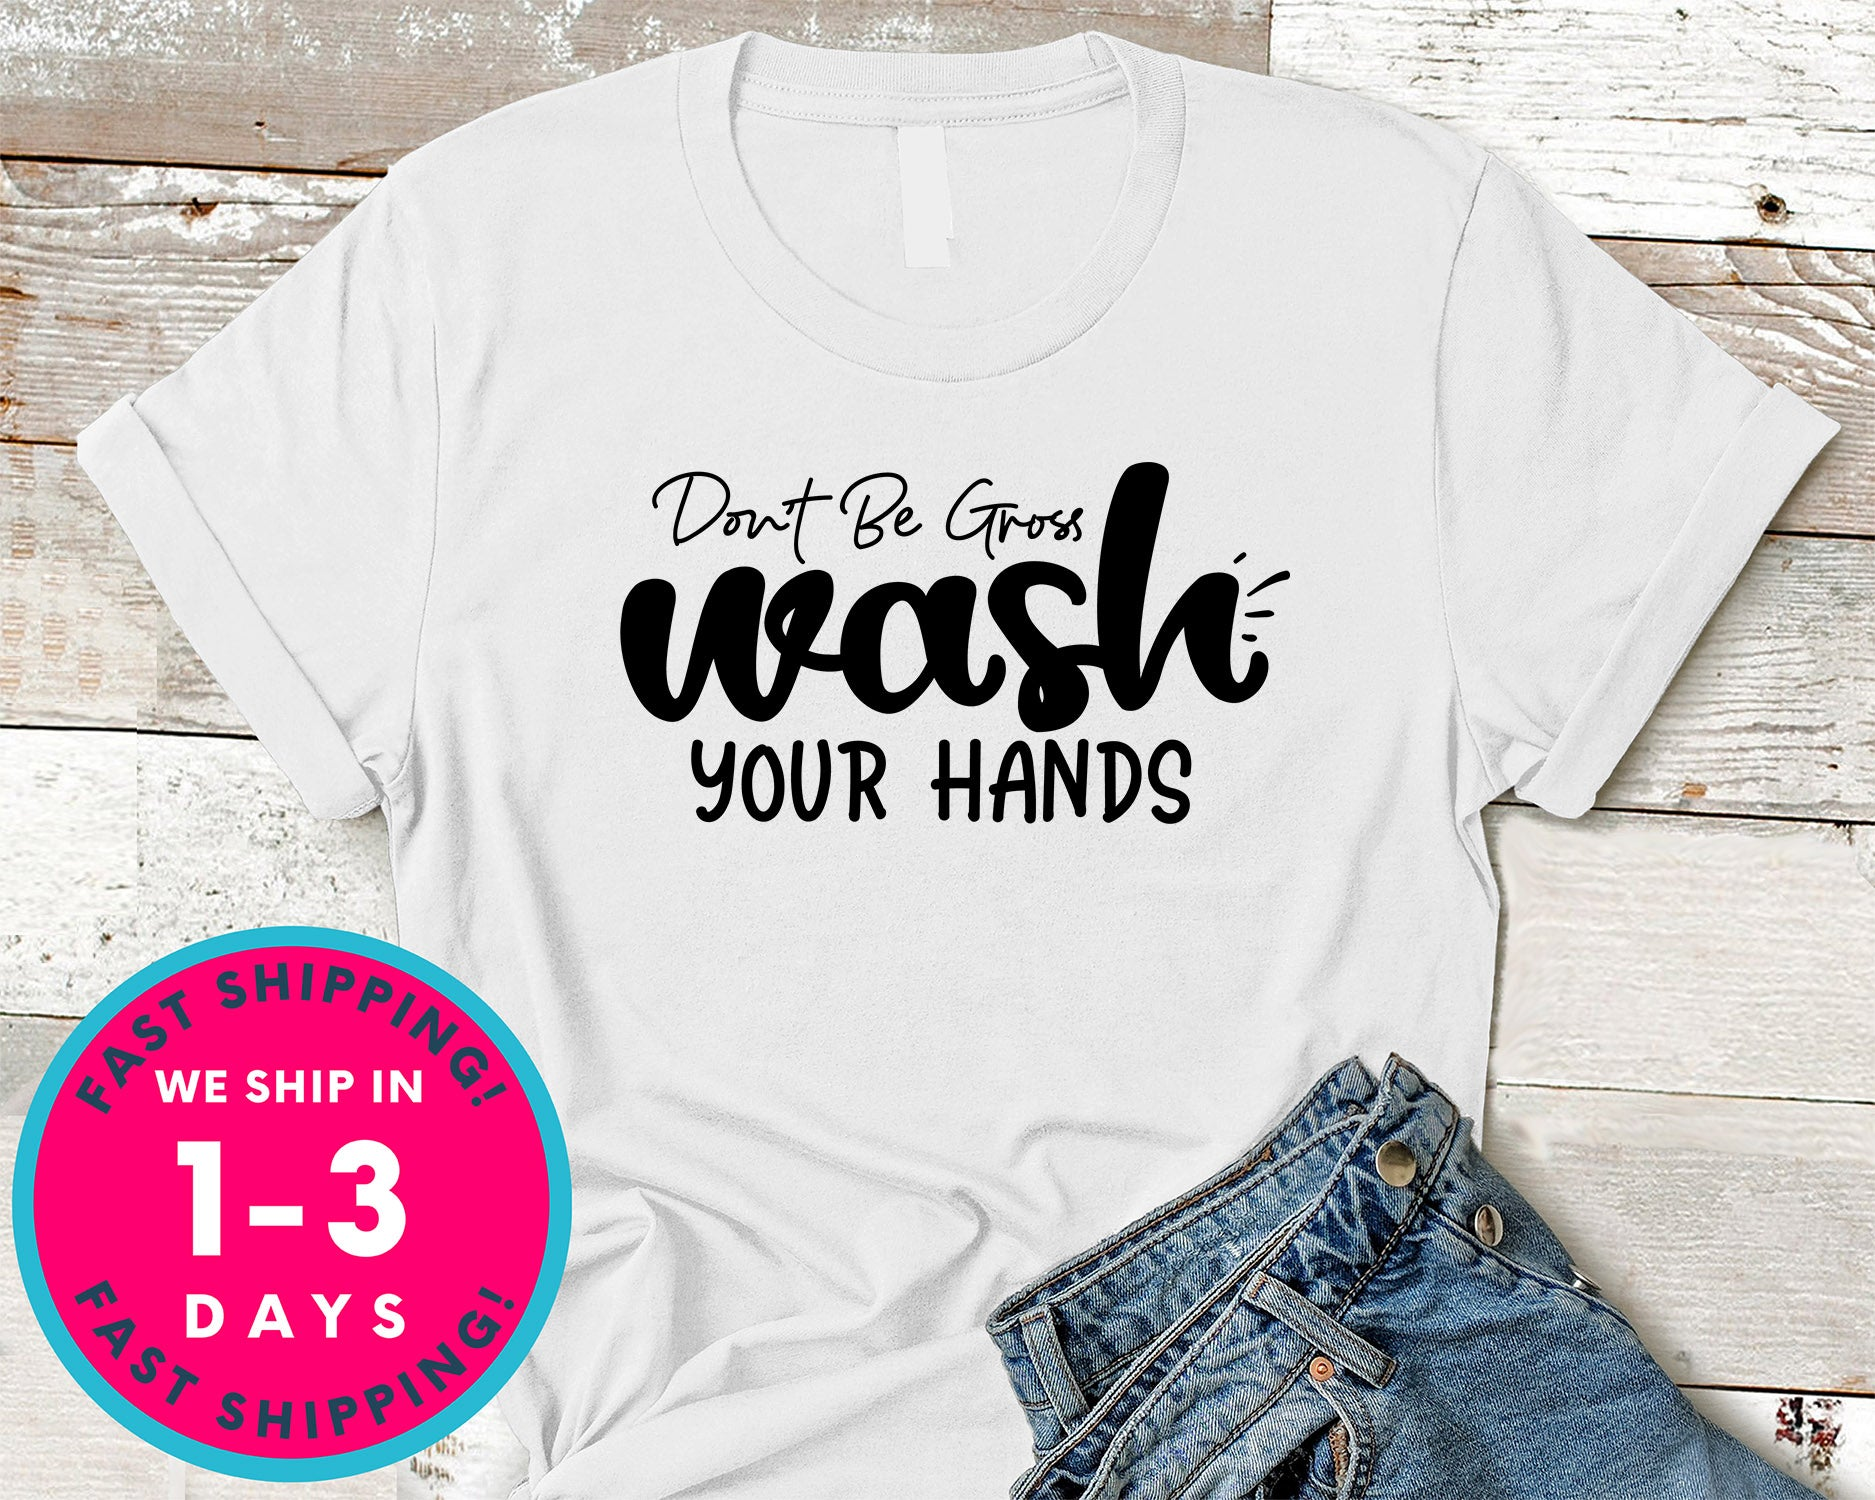 Don't Be Gross Wash Your Hands